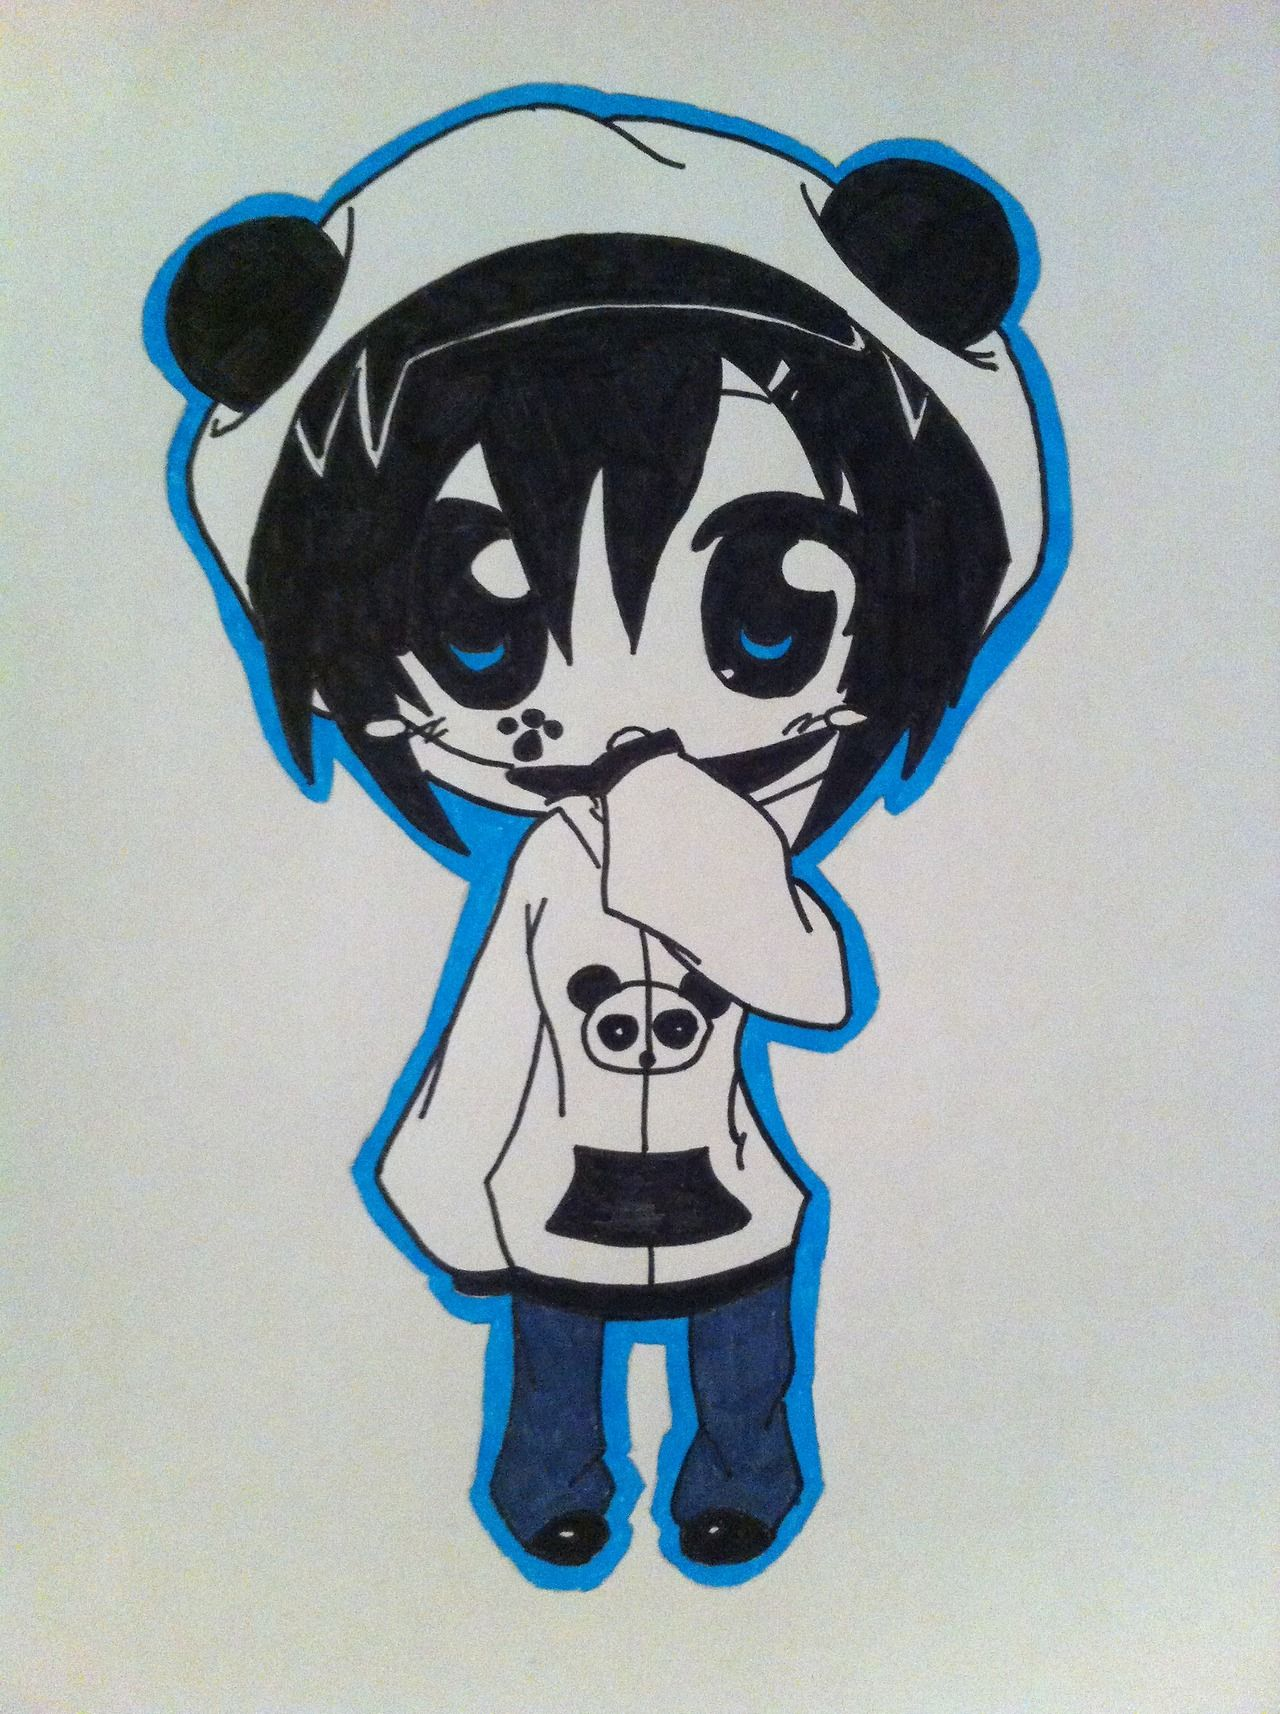 Chibi panda hoodie Chibi panda, Emo art, Illustration art